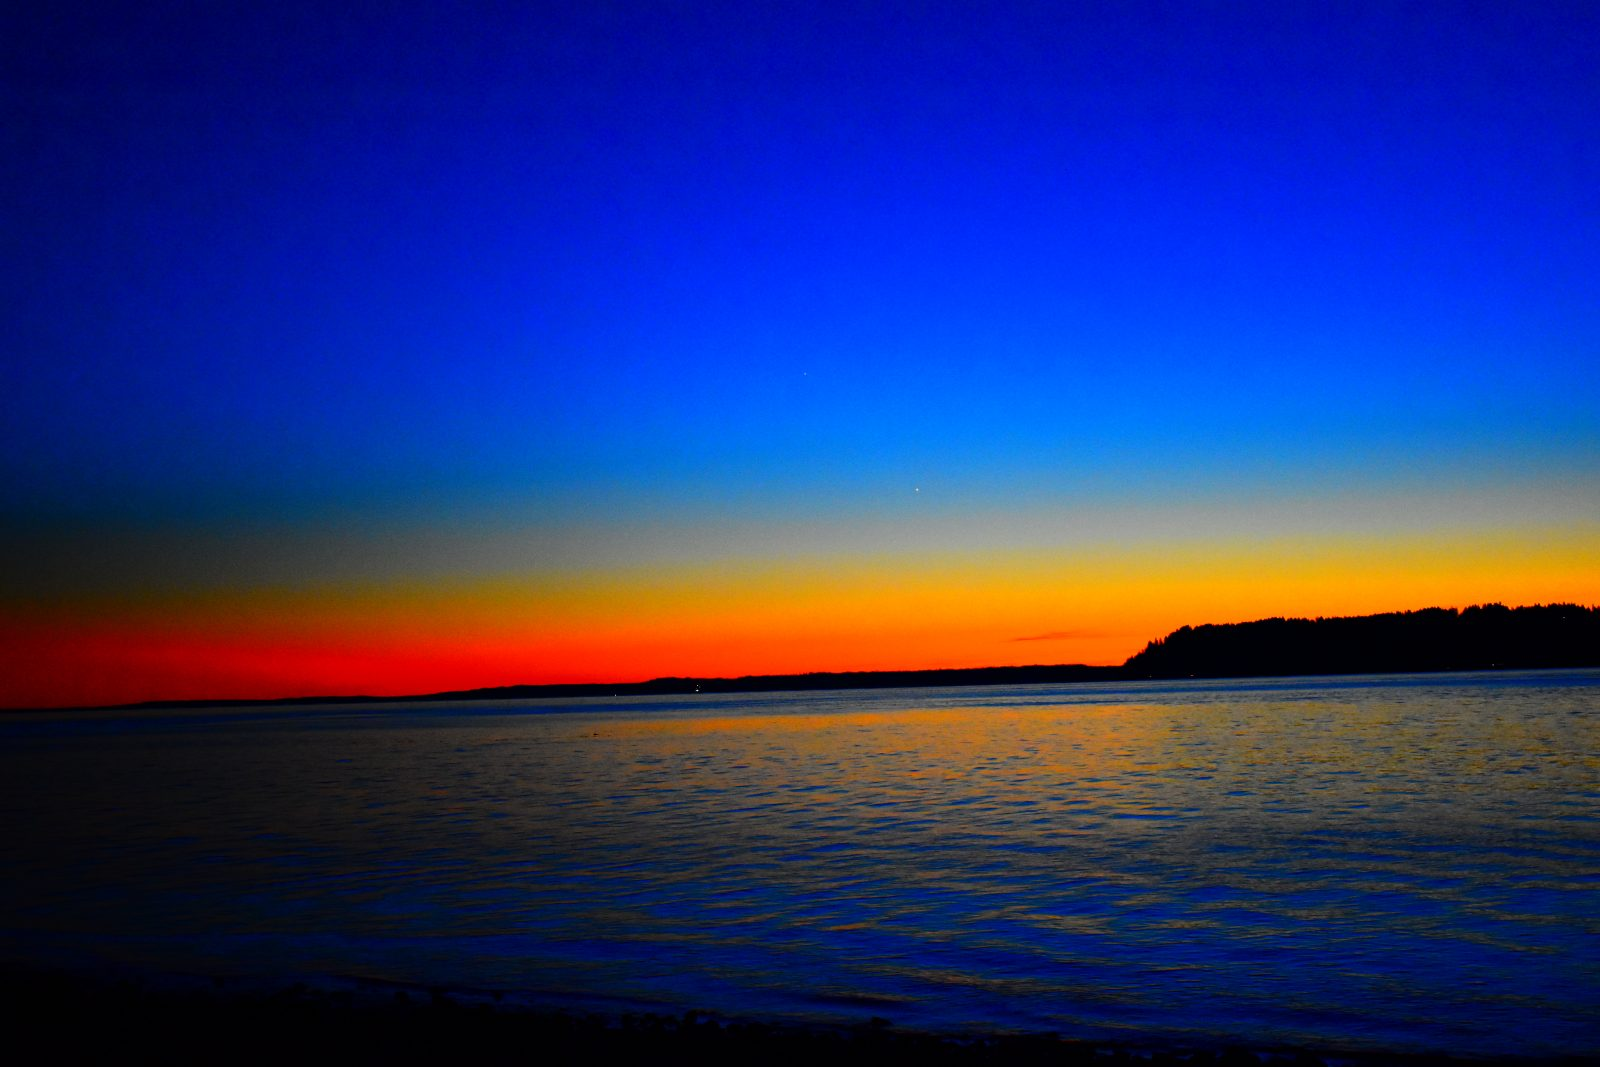 Blue Sunset with a touch of Red